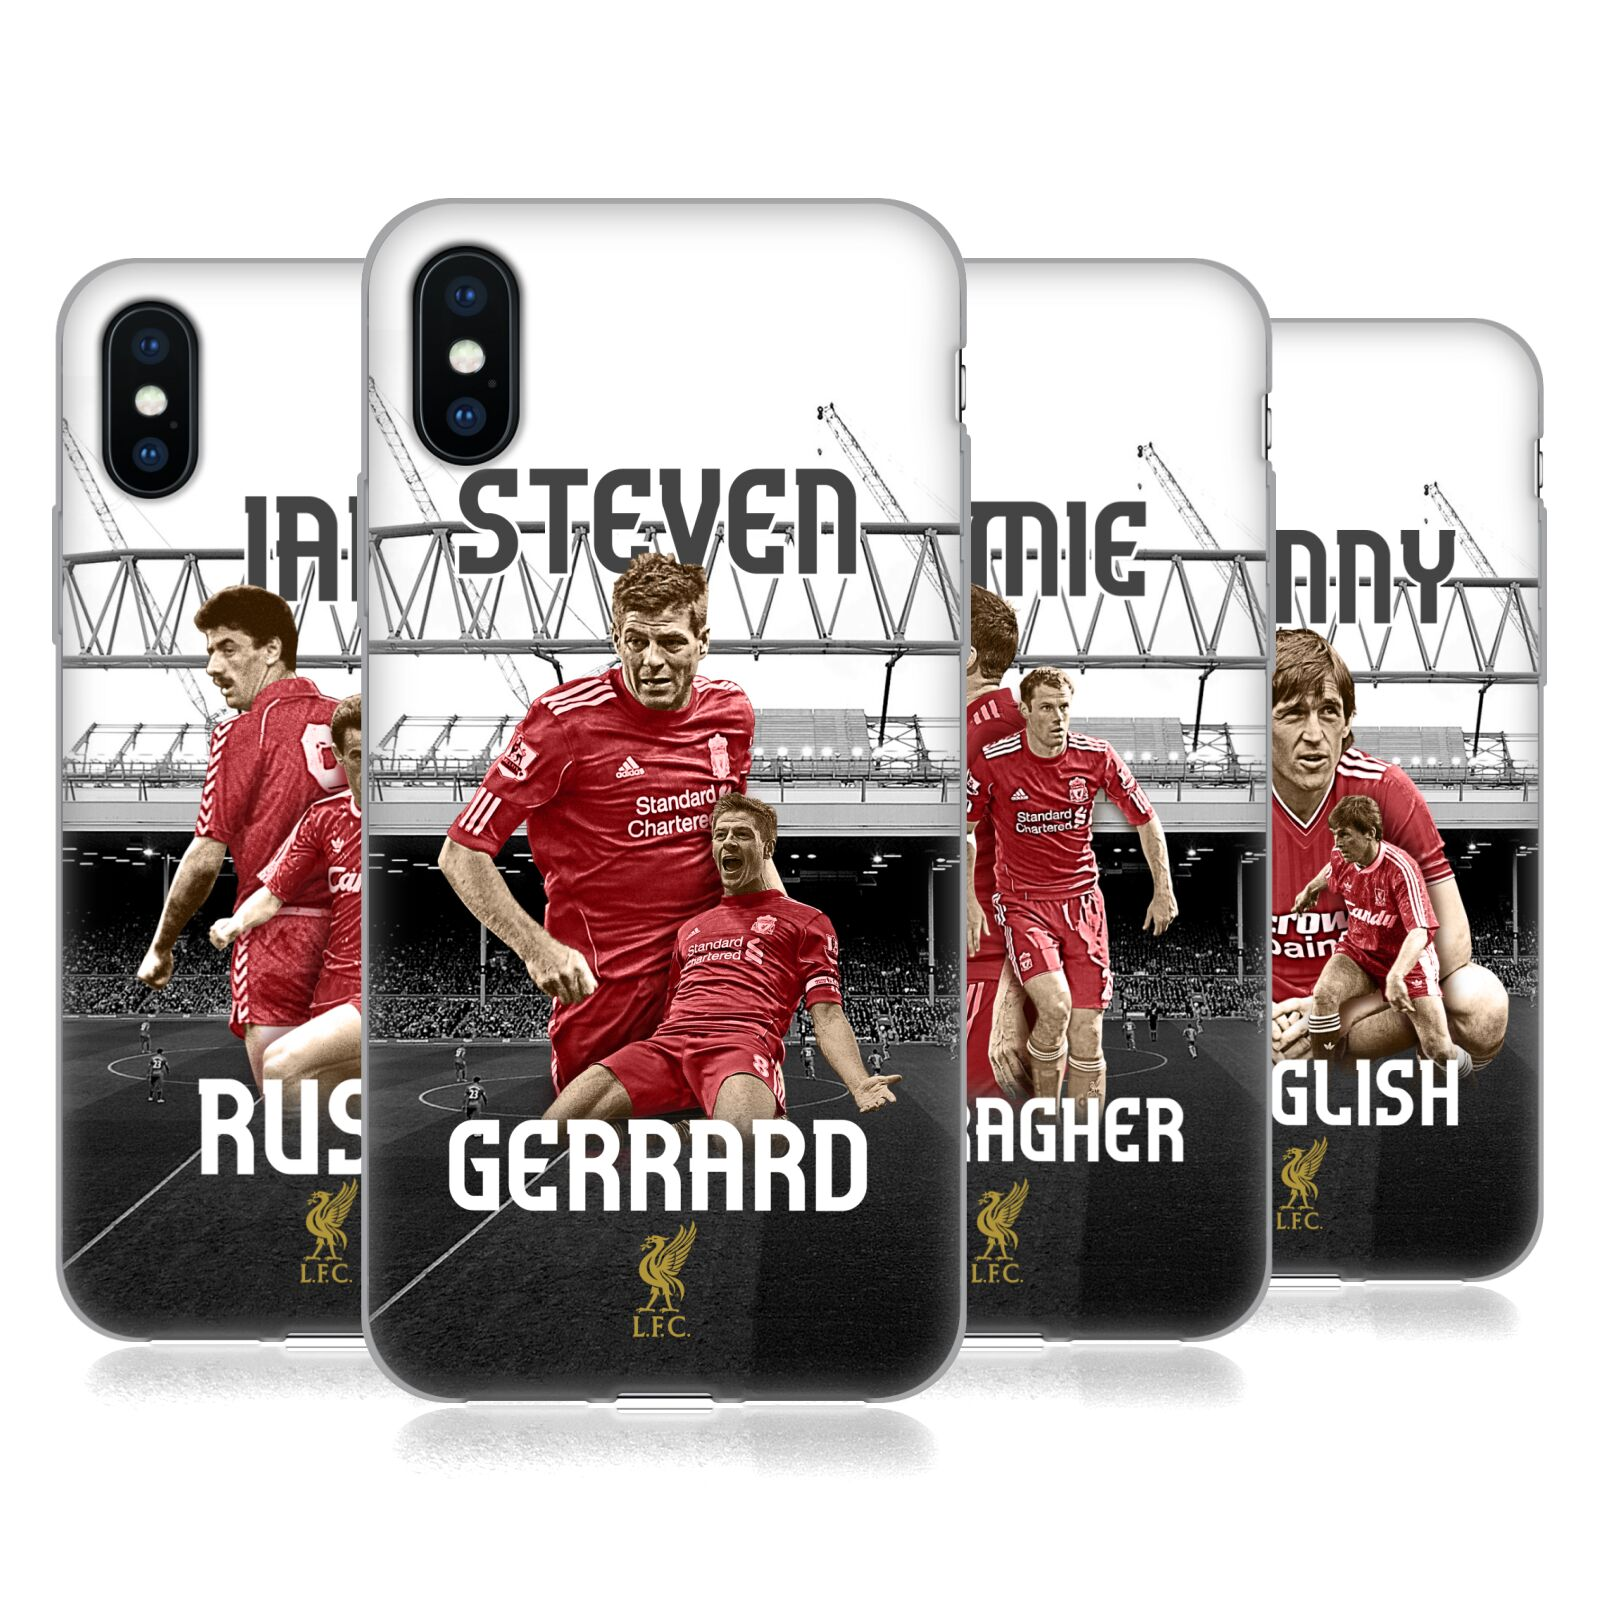 Liverpool Football Club <!--translate-lineup-->Legends<!--translate-lineup-->